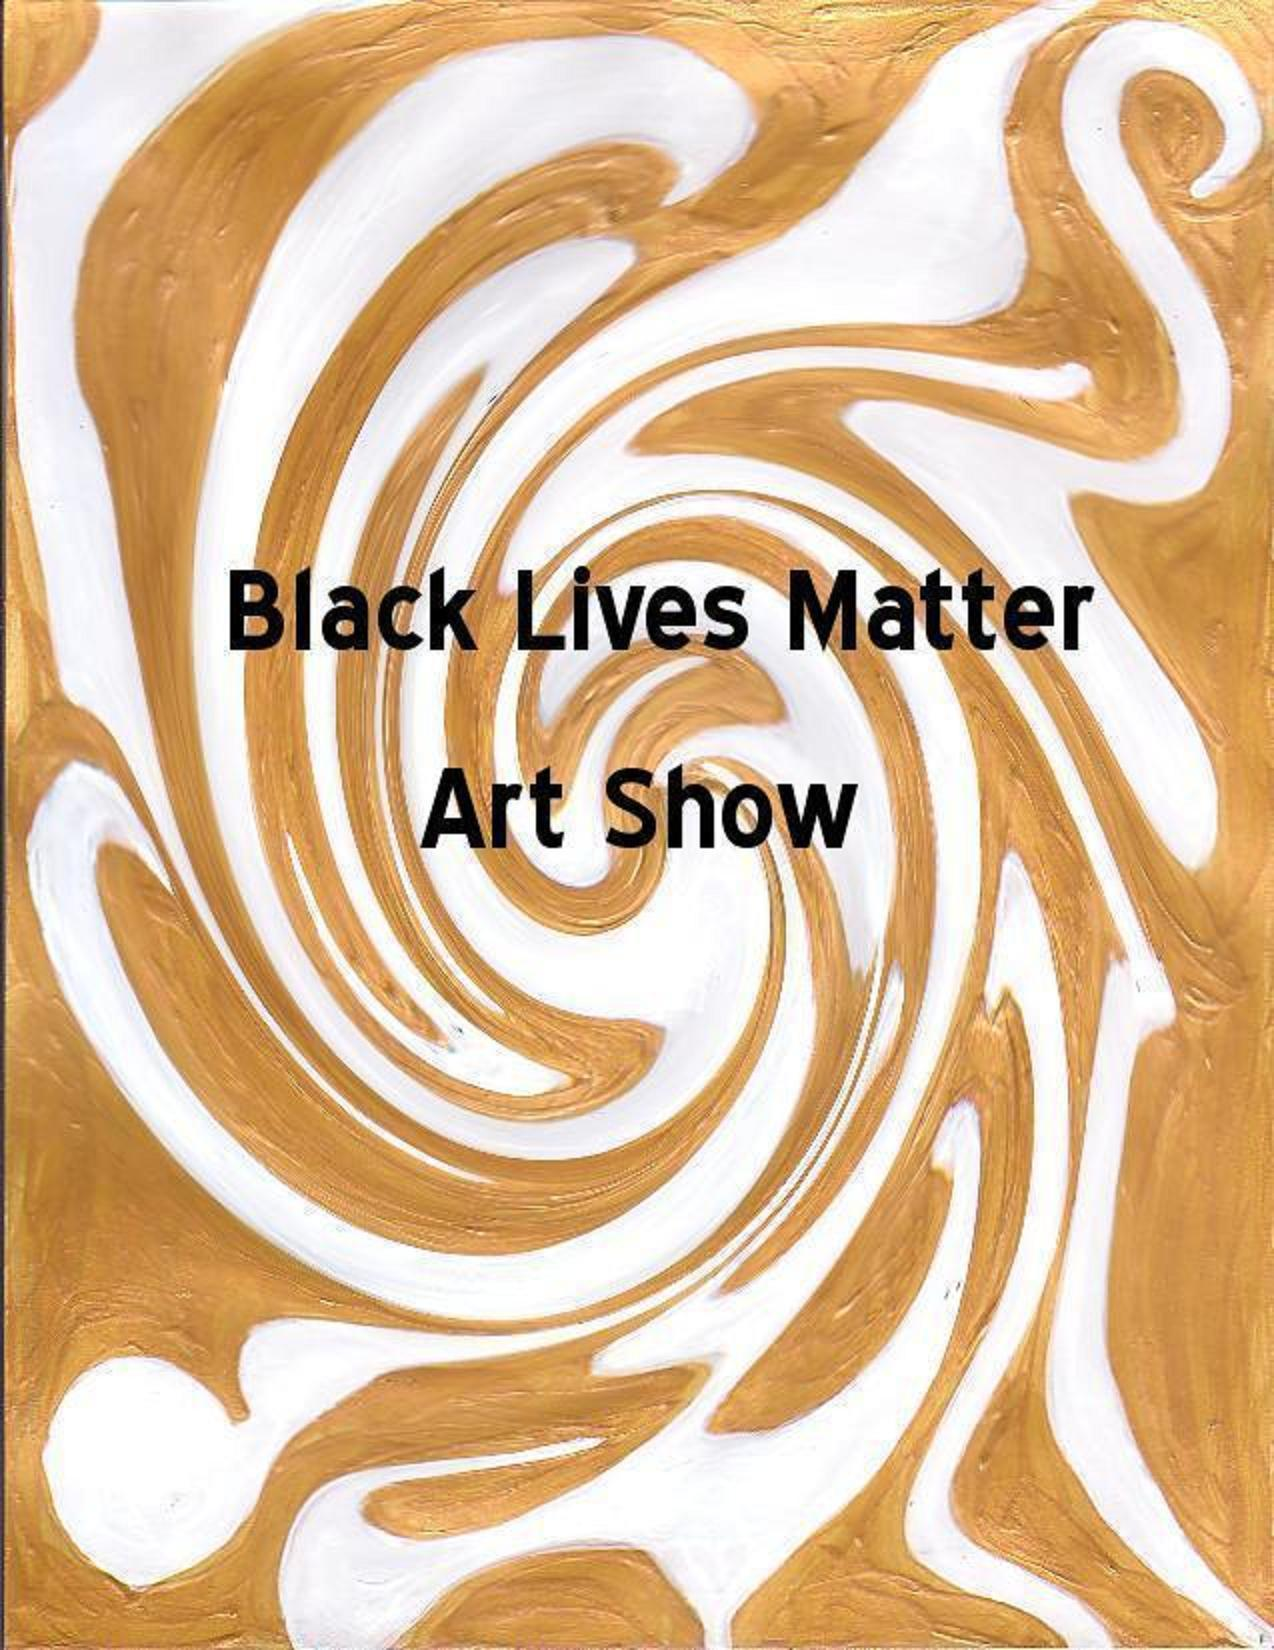 Black Lives Matter Art Show  | Events Calendar